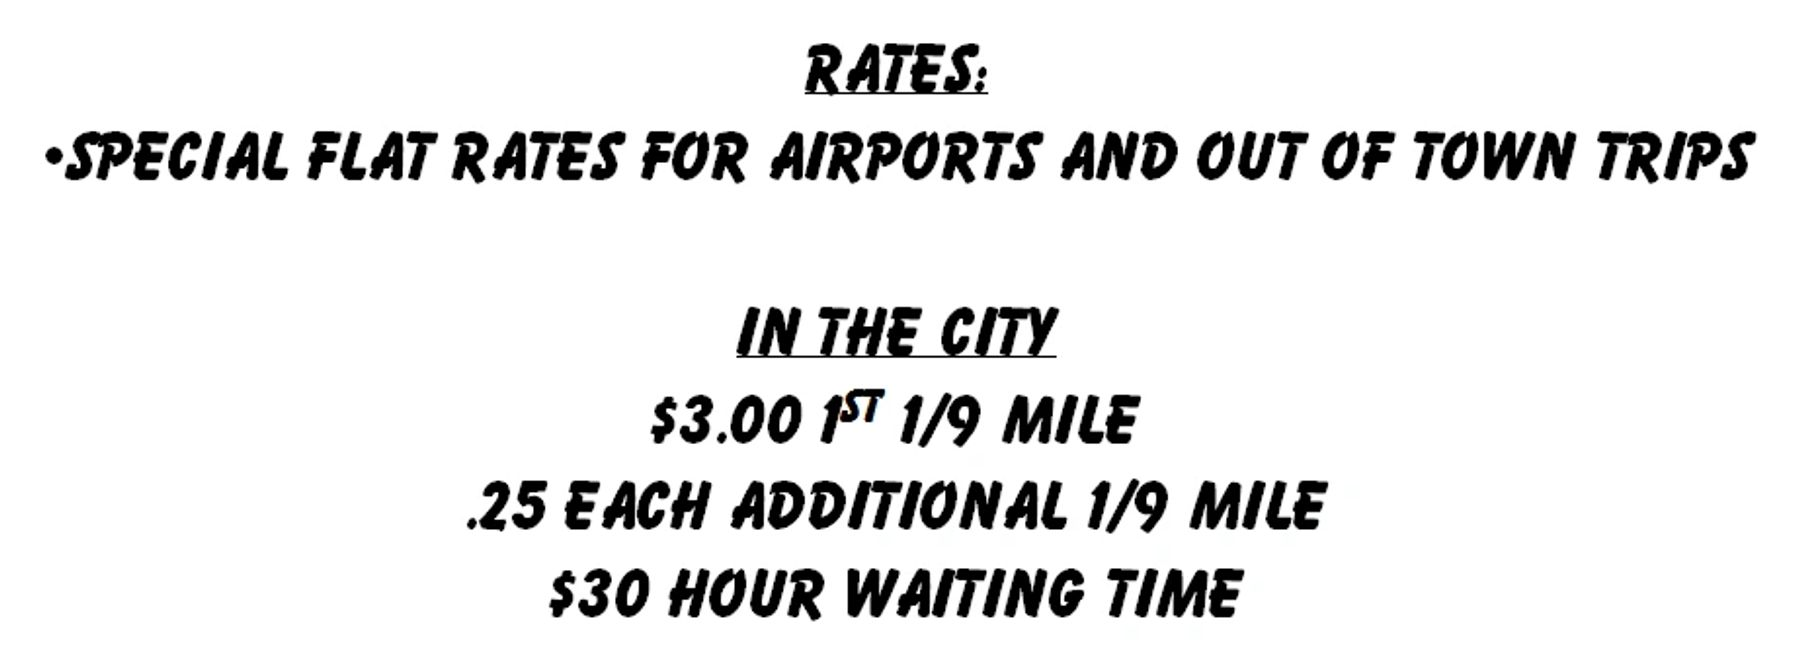 Special Rates Airport Shuttle Taxi Rides in Biloxi, MS. Casino shuttle